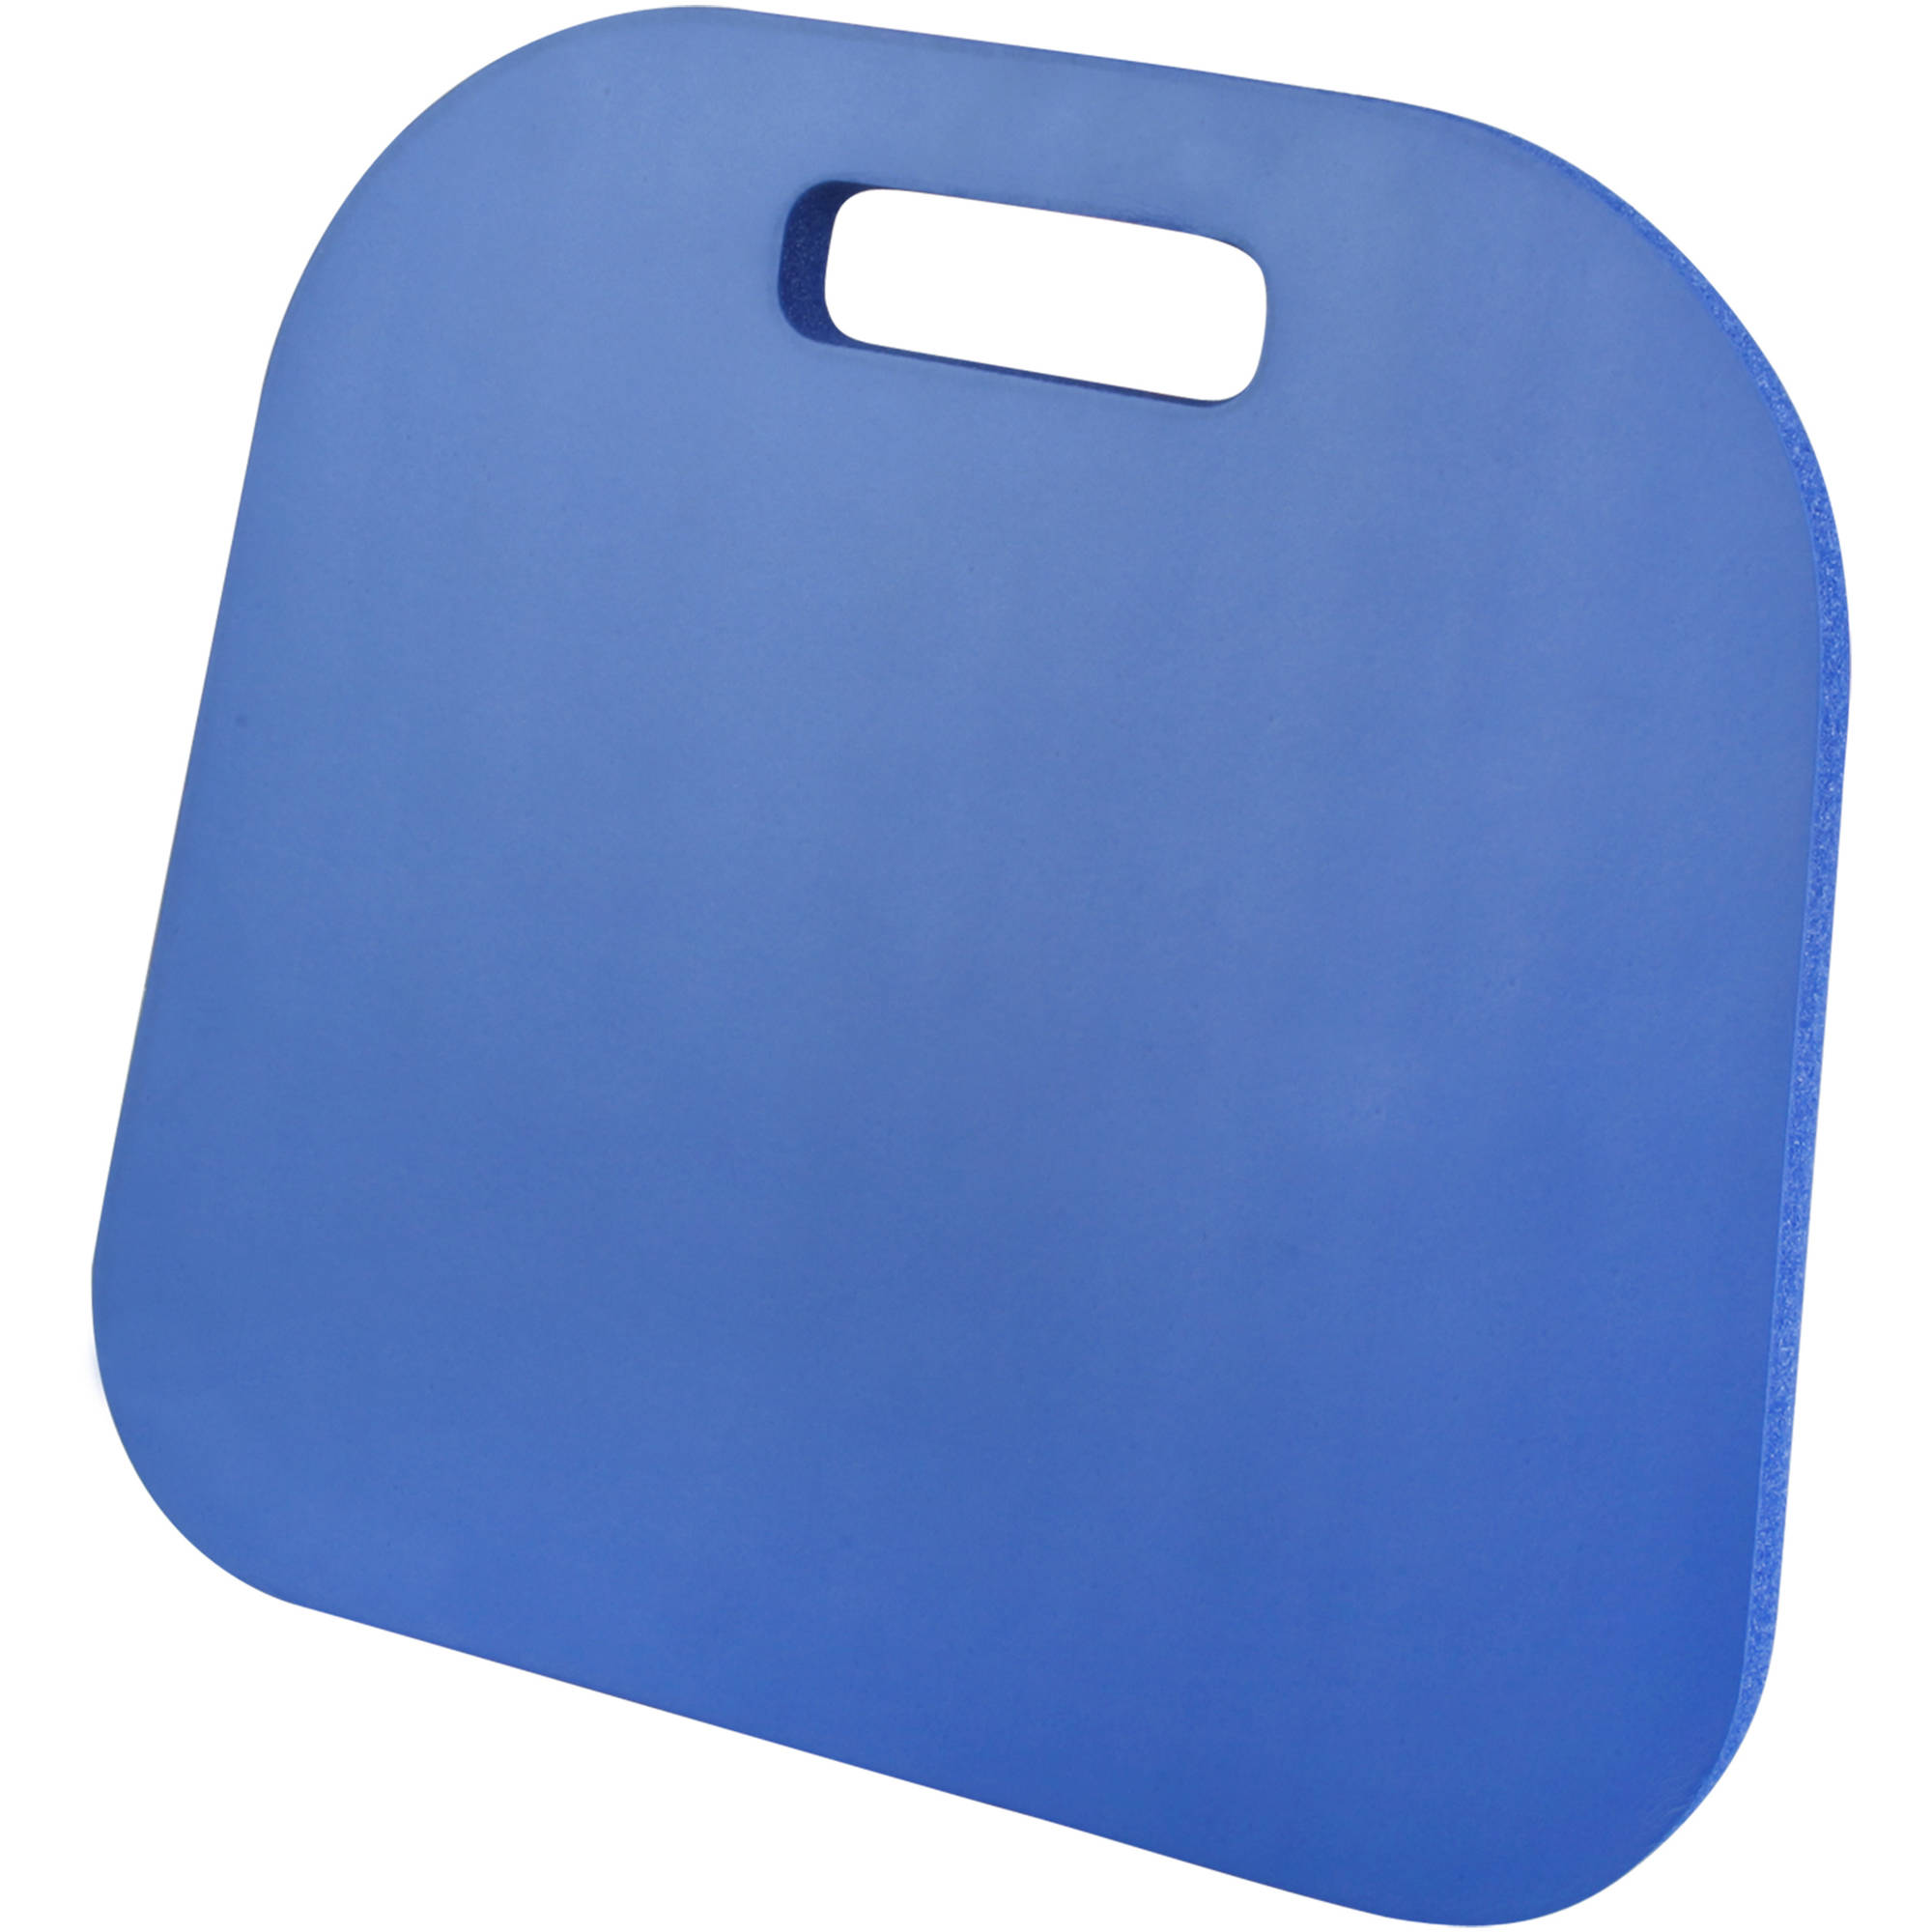 Baby bath chair walmart - Ozark Trail Seat Cushion